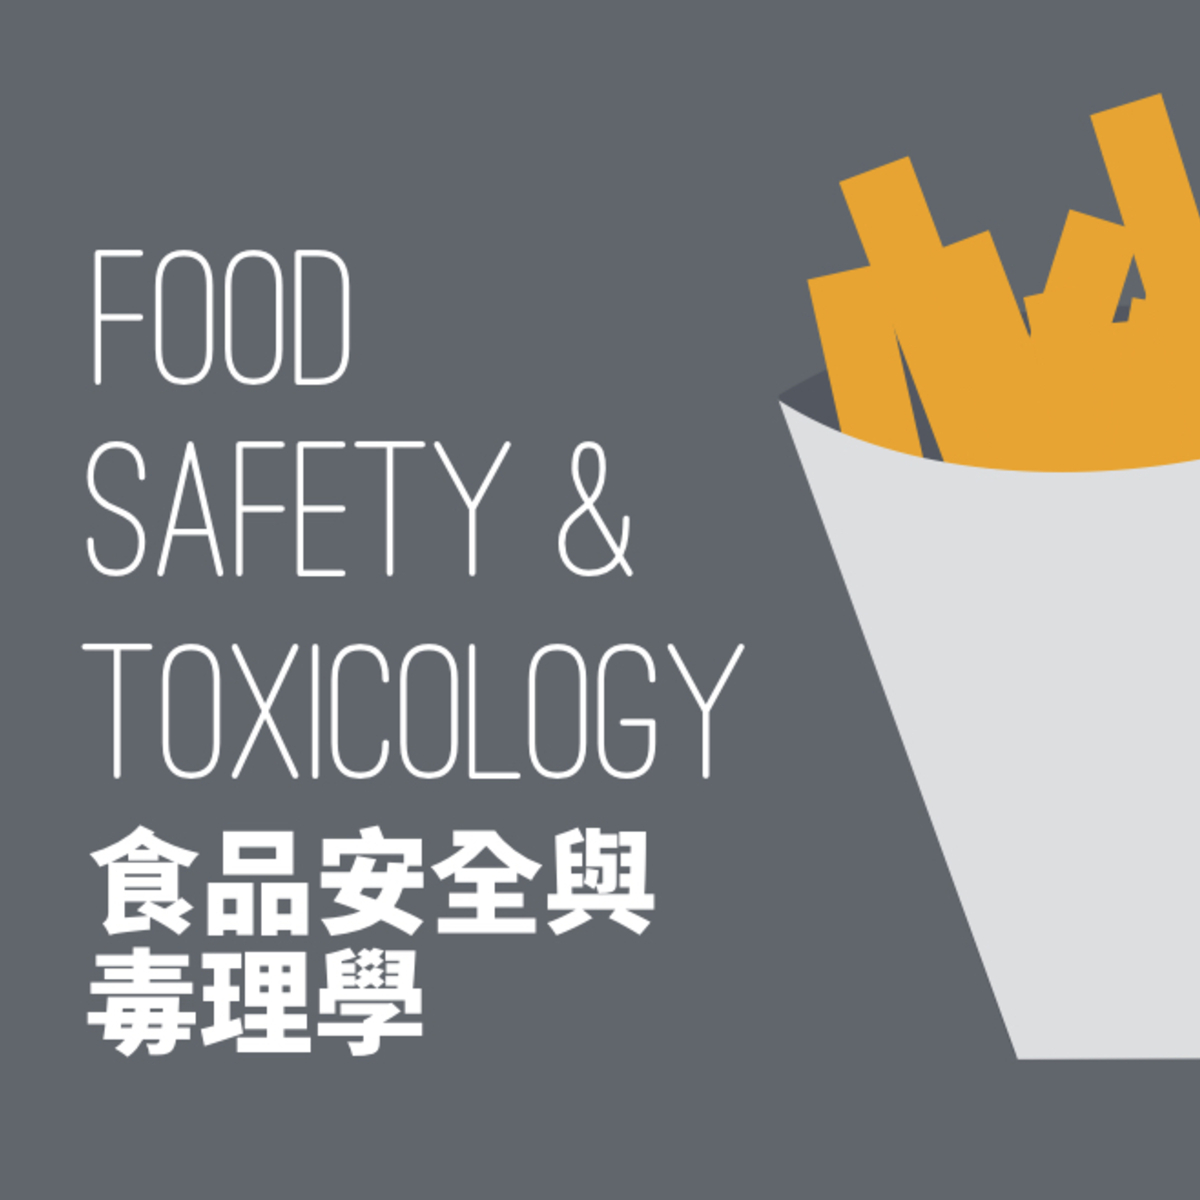 Reviews for food safety toxicology from for Mooc cuisine 2017